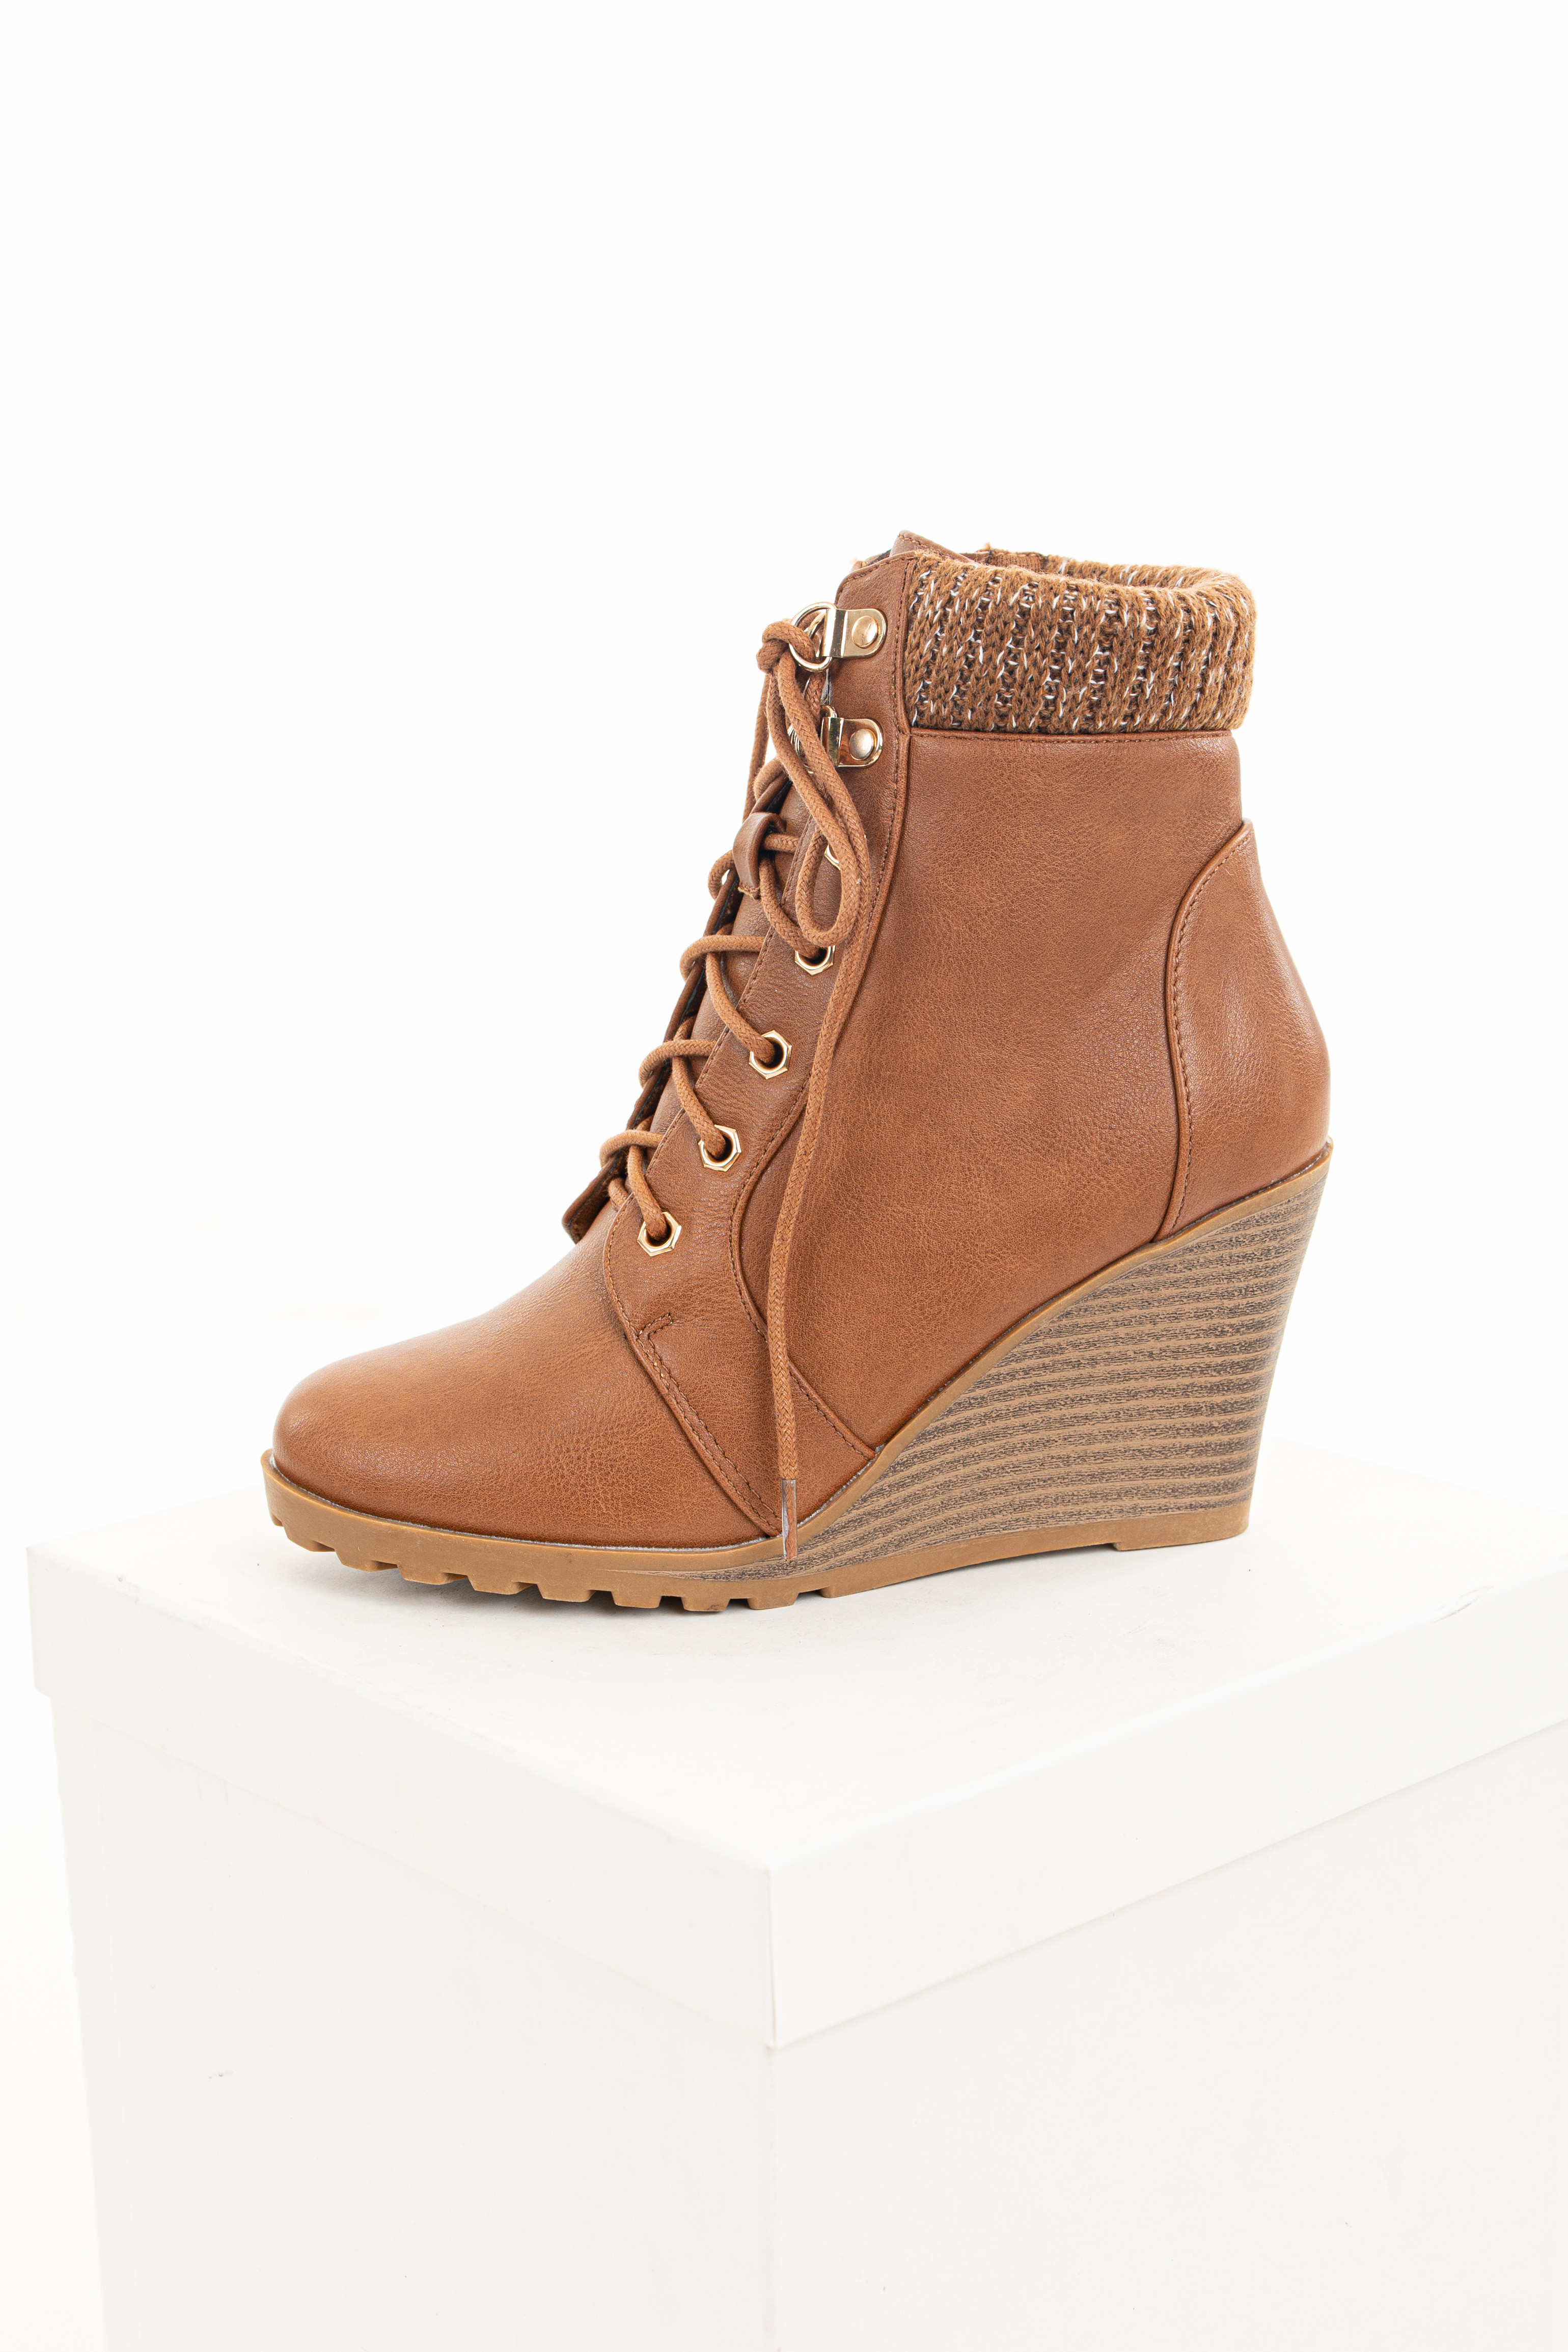 Camel Lace Up Wedge Bootie with Sweater Detail on Ankle